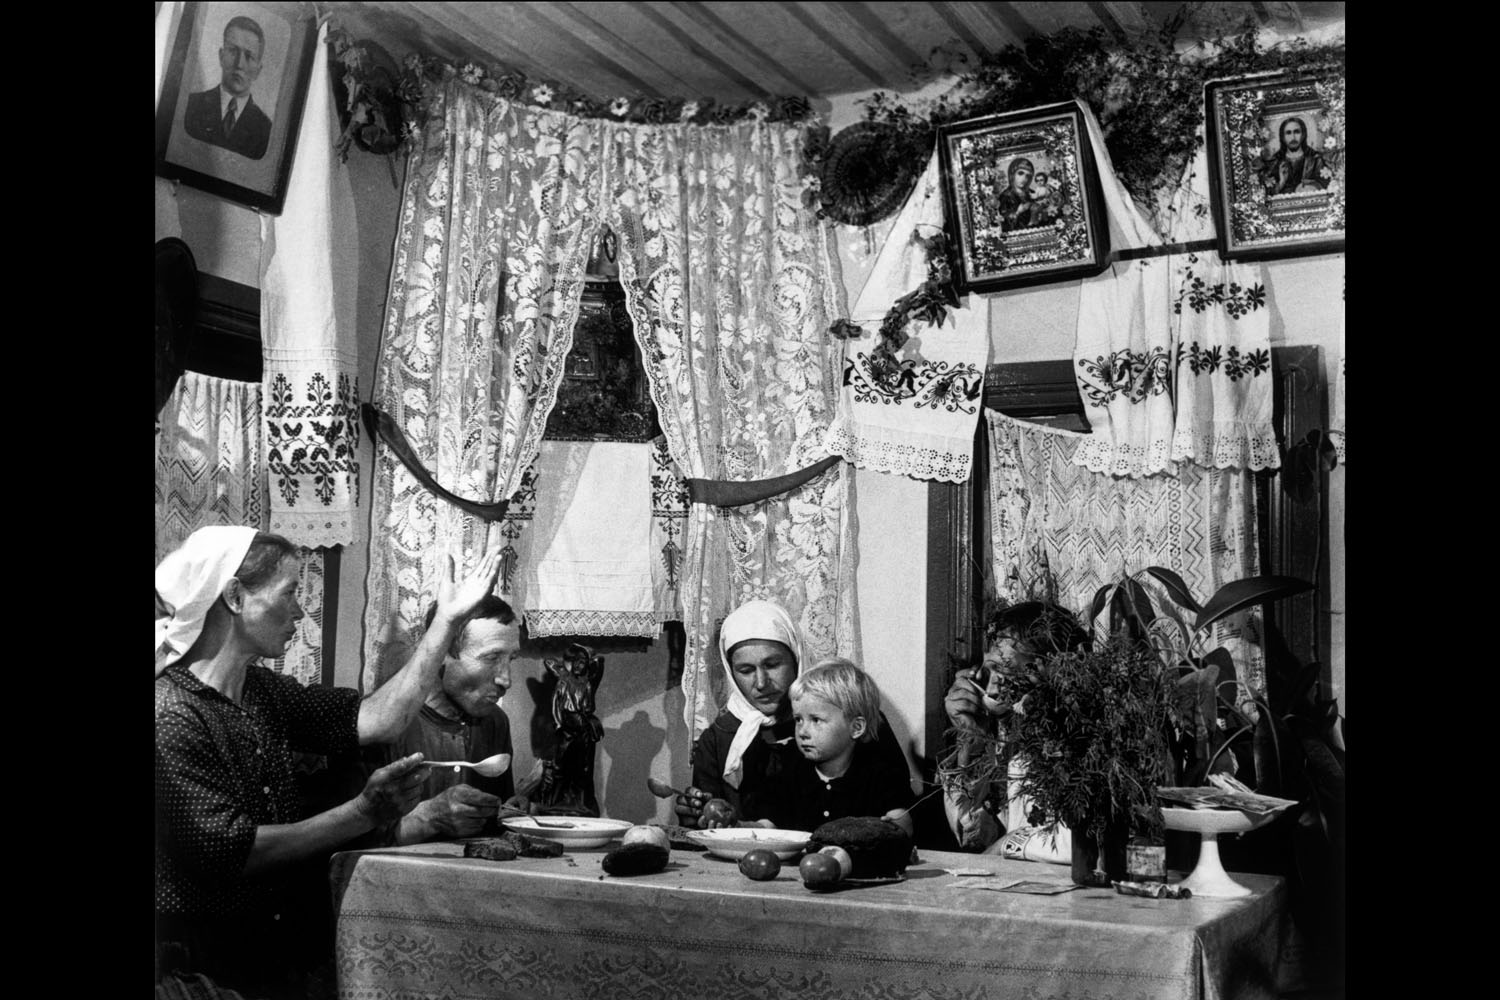 Families of a collective farm seated for a meal in Ukraine, 1947.